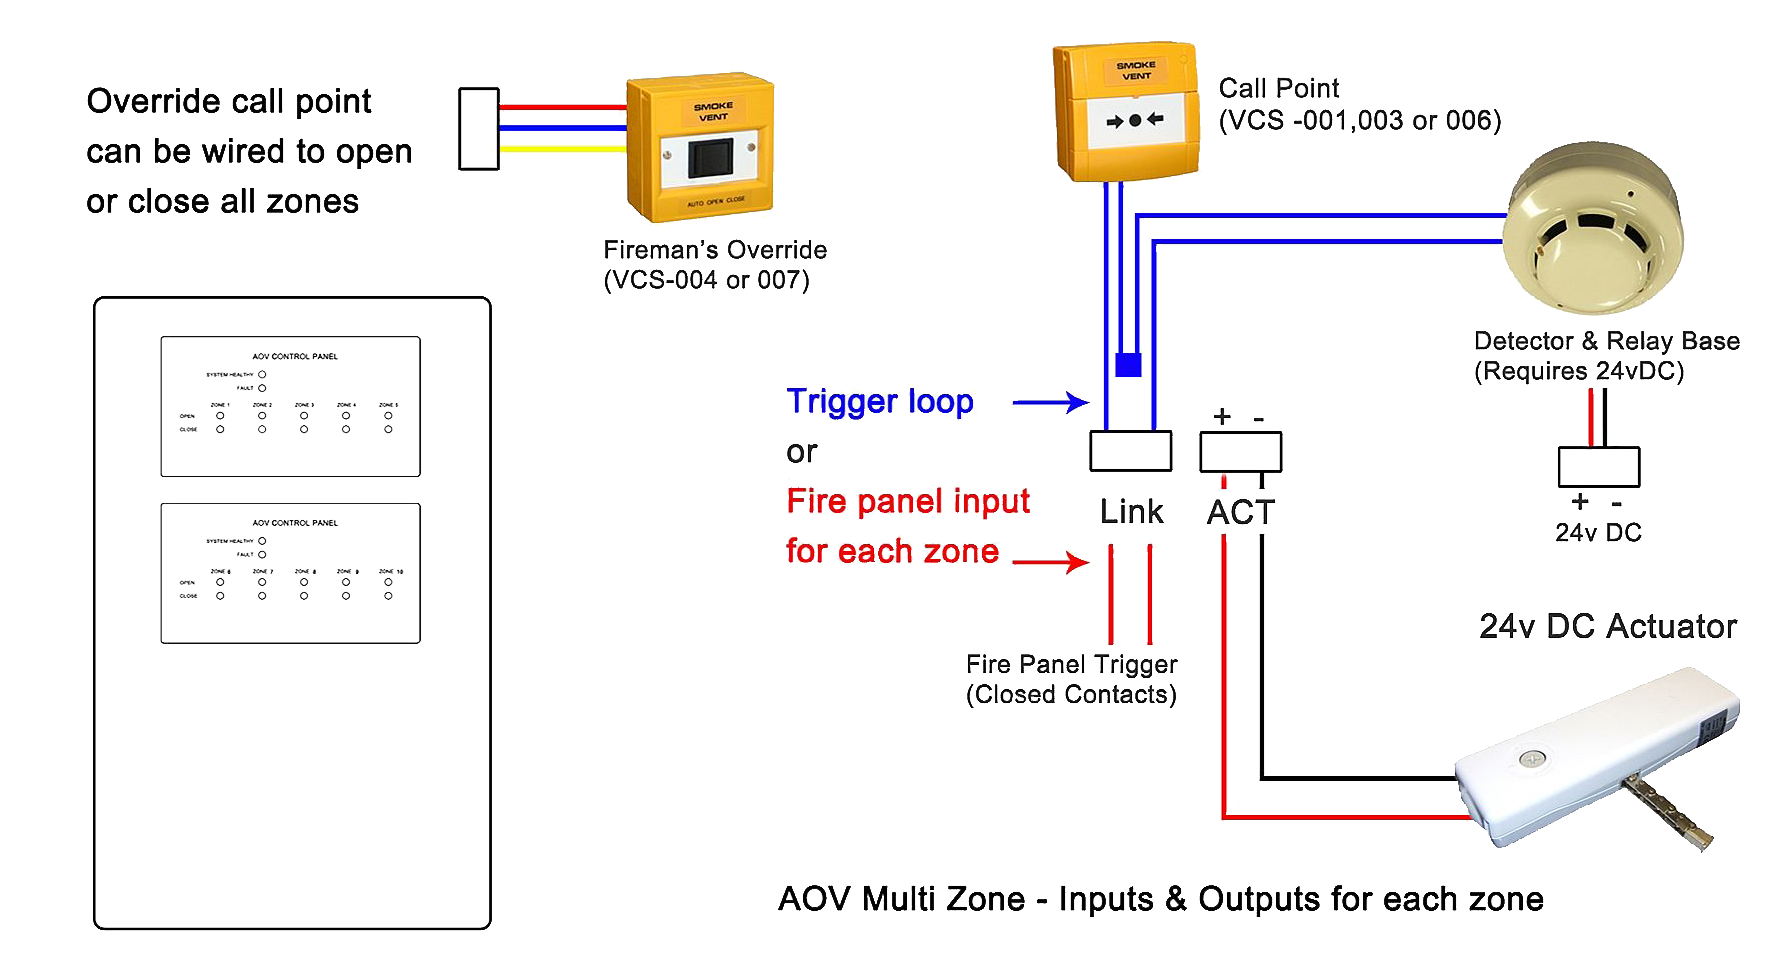 Aov Control Panel Schematics